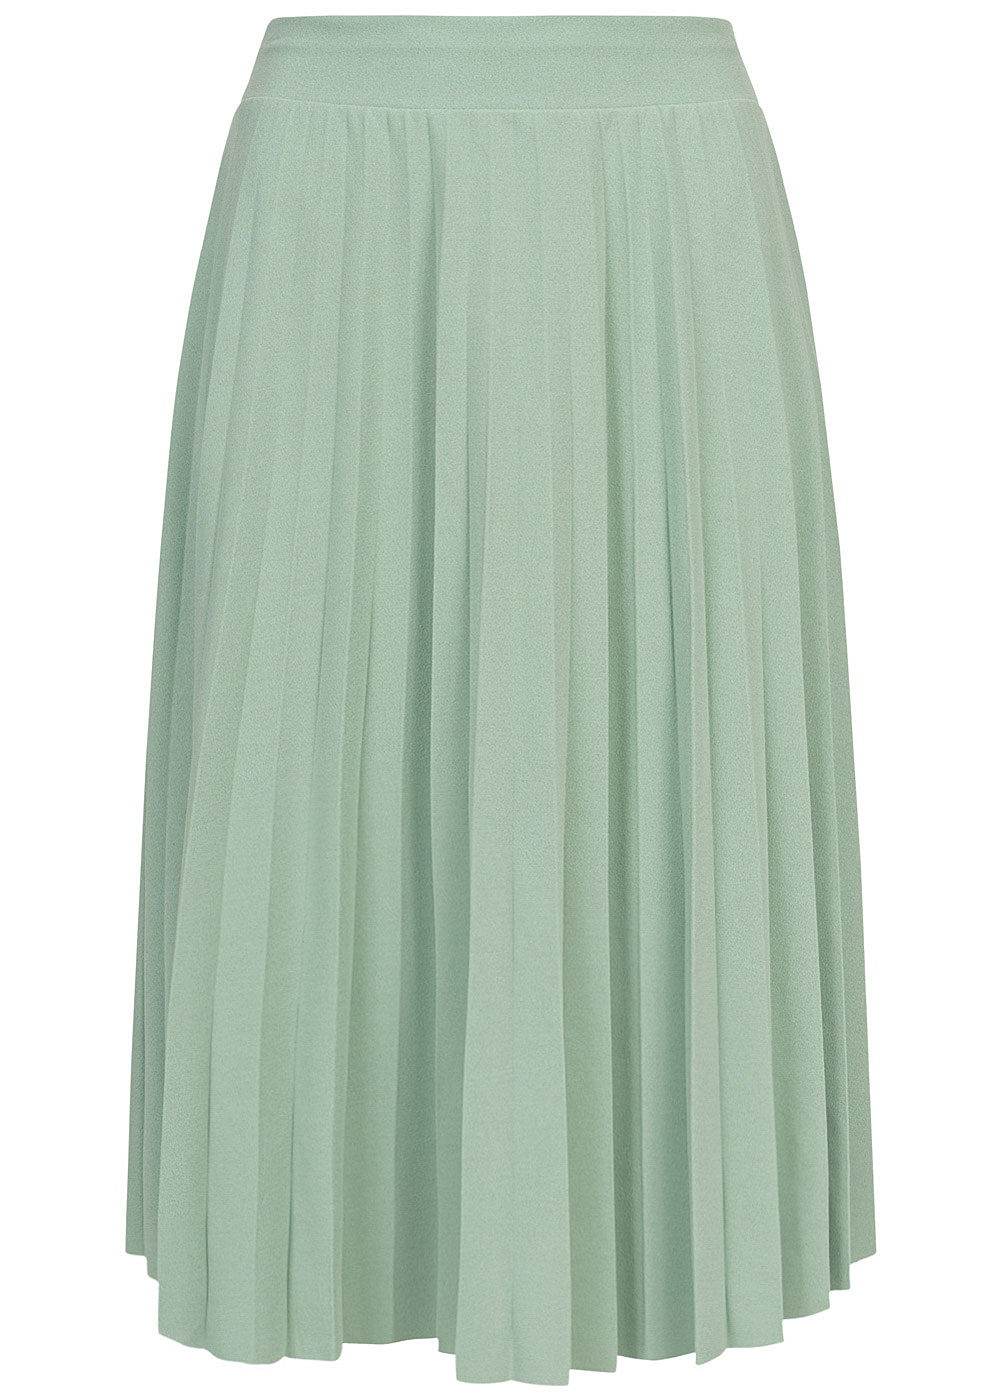 Styleboom Fashion Damen Plissee Midi Falten Rock unicolor jade grün - Art.-Nr.: 20086375